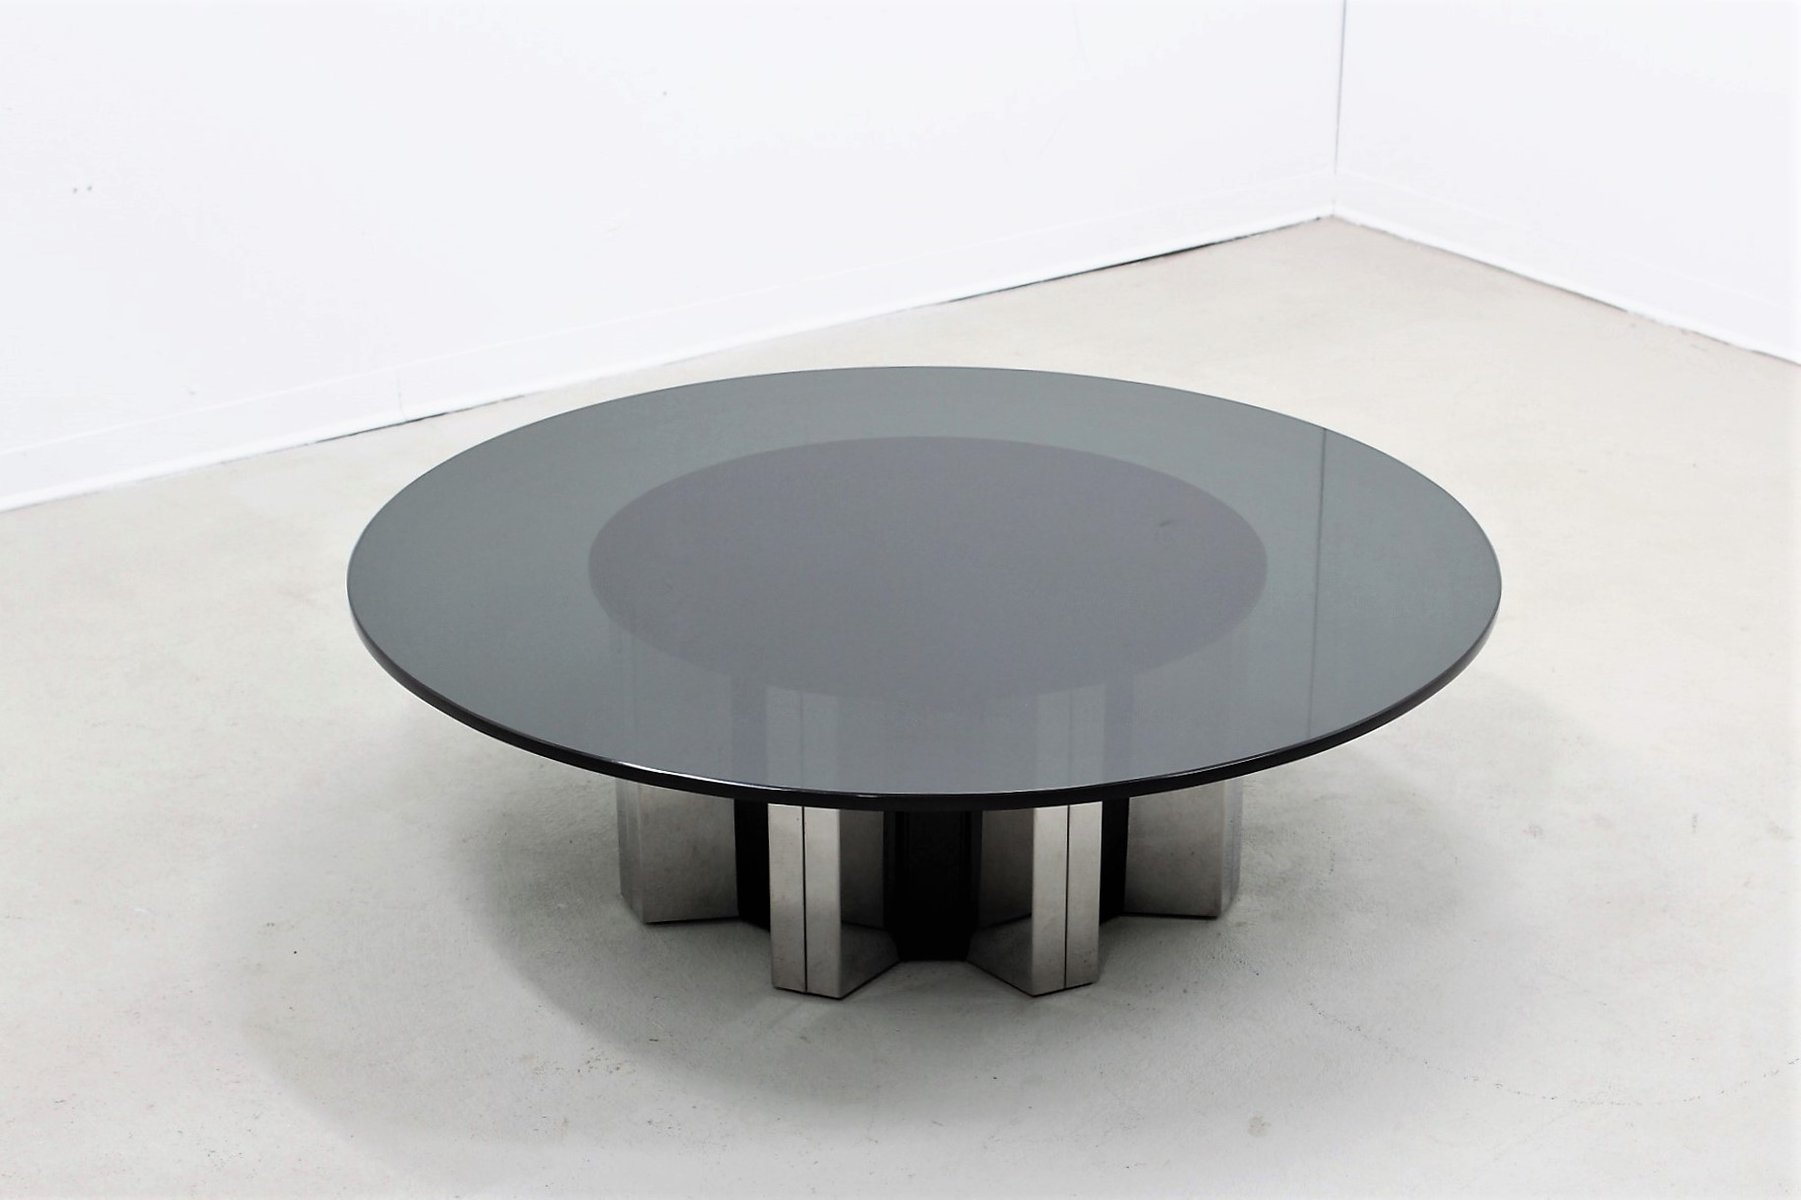 grande table basse ronde par willy rizzo 1970s - Grande Table Basse Ronde